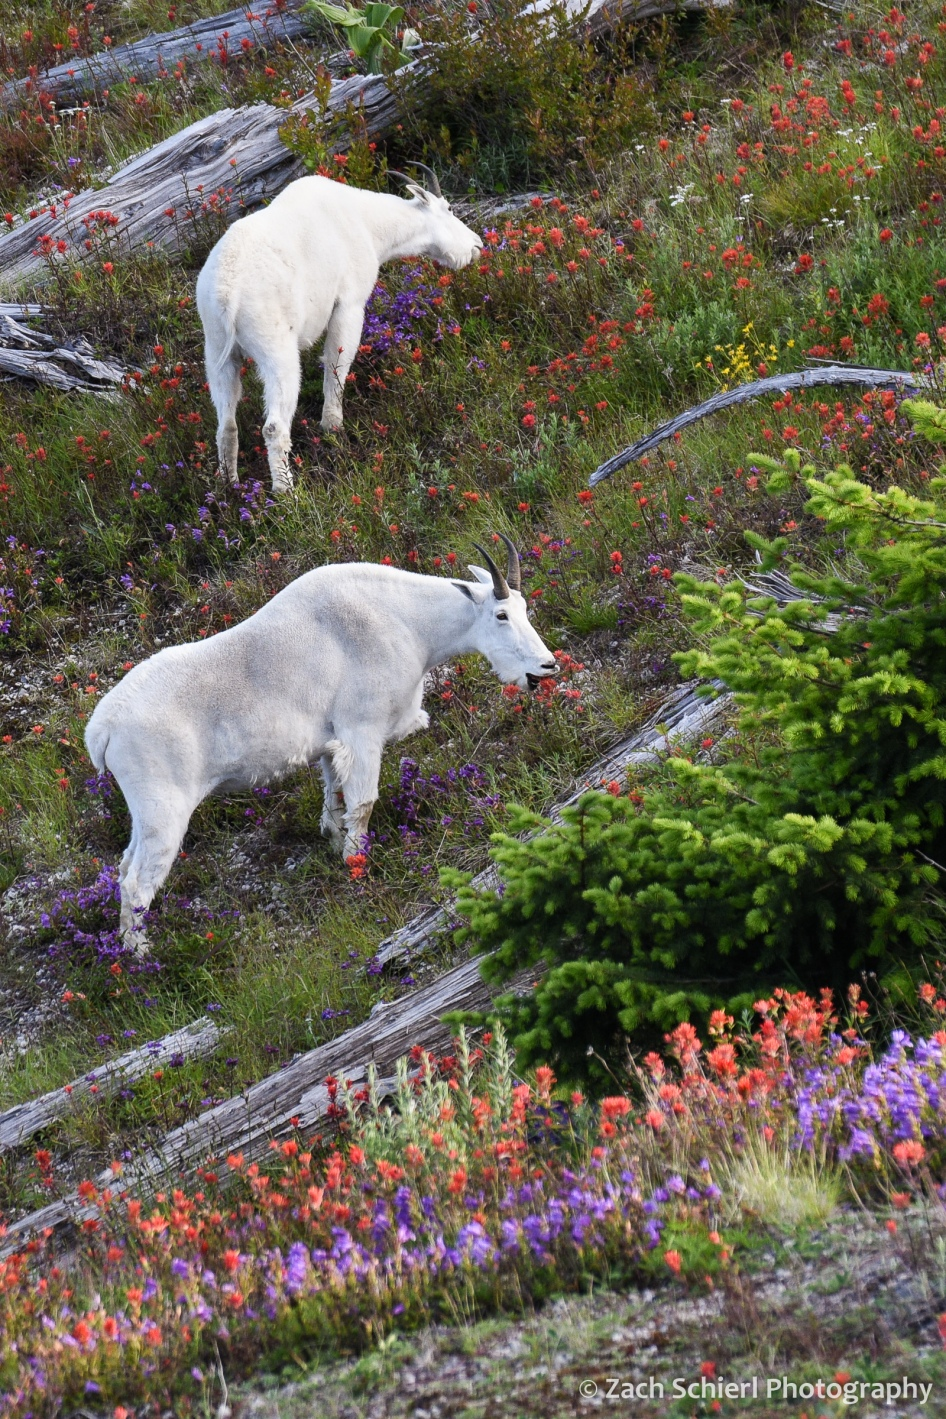 Two mountain goats graze a field of bright purple and red flowers